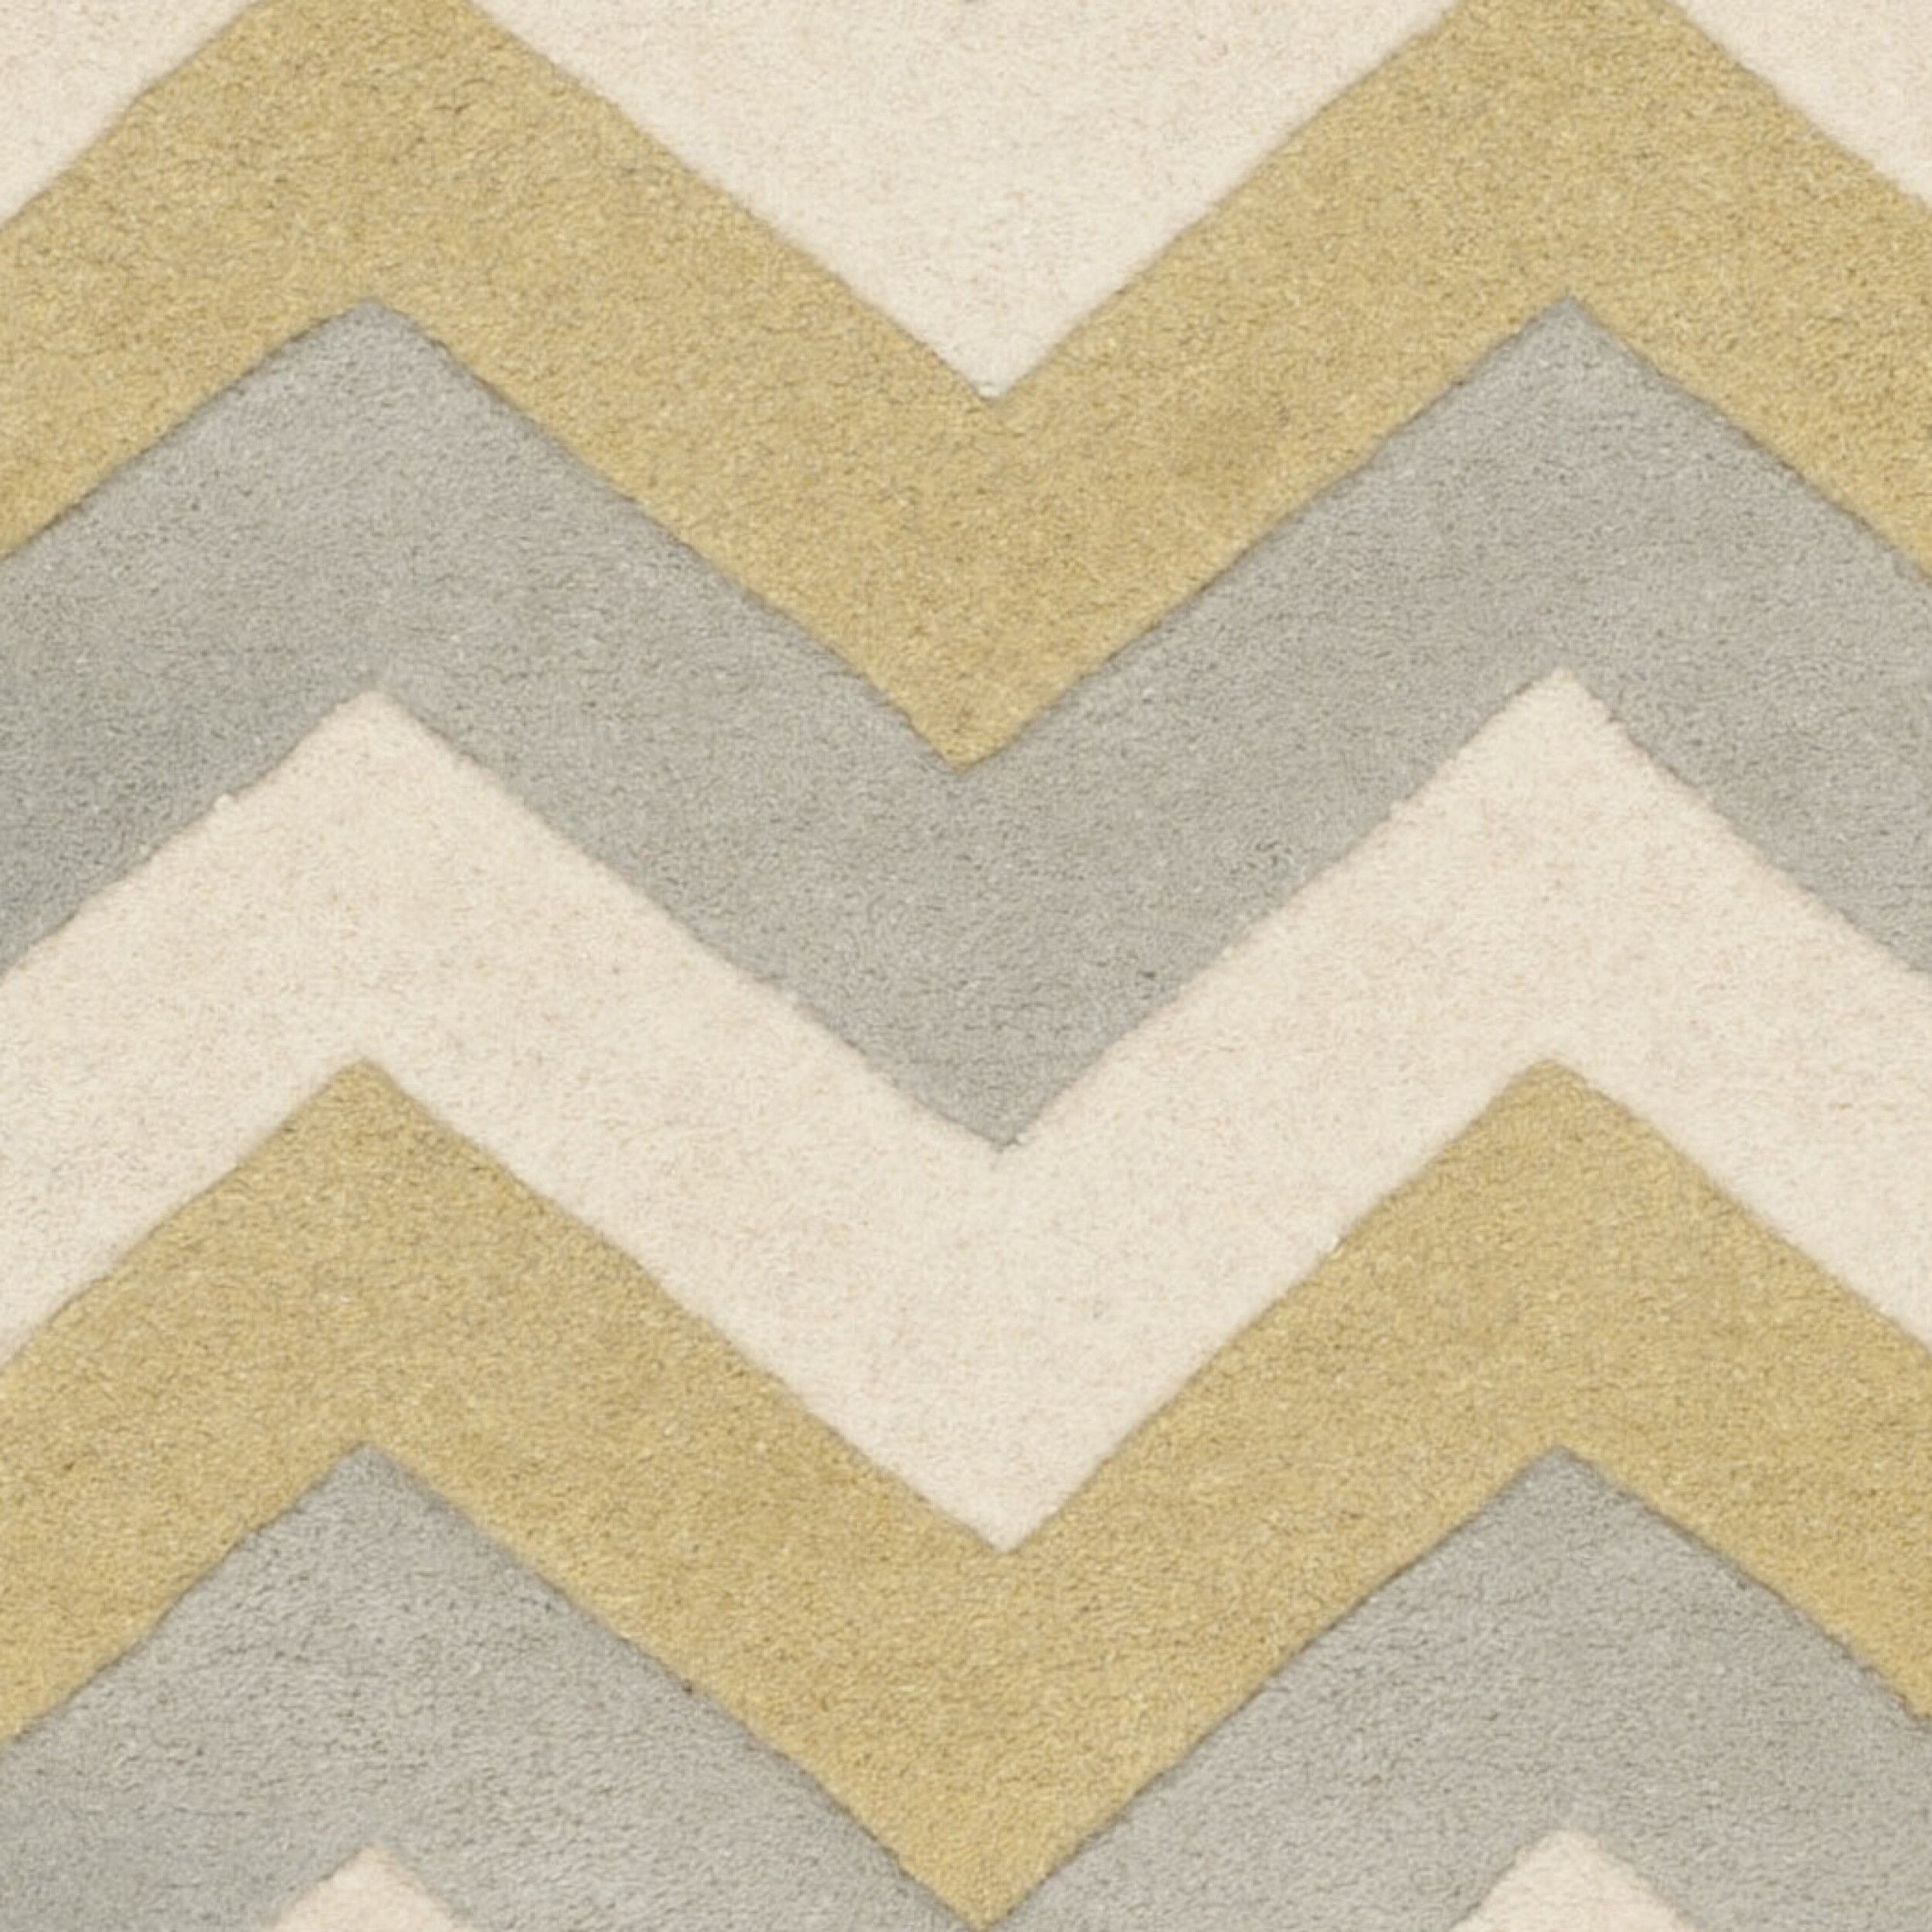 Chevron Area Rugs Safavieh Msr3612b Chevron Leaves Area